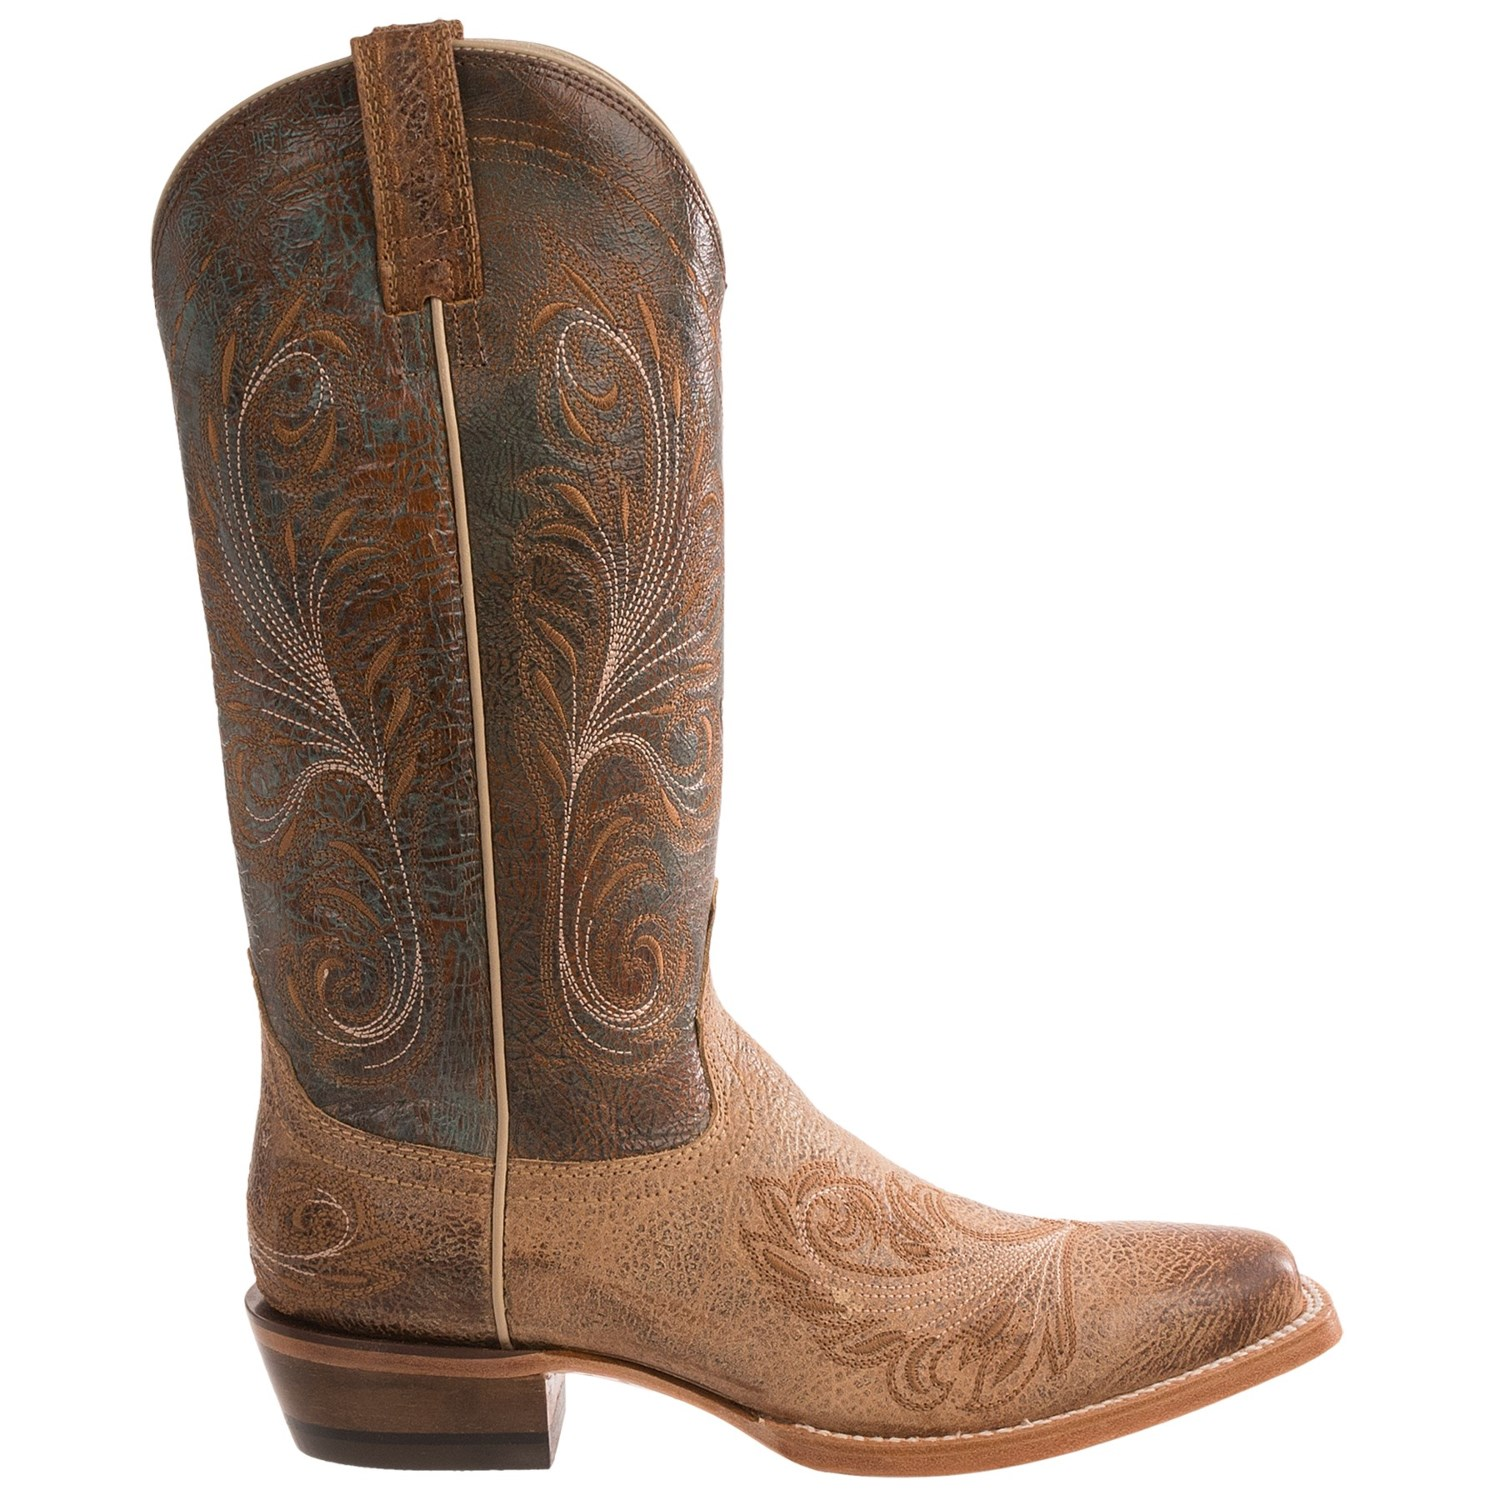 Ariat Cowboy Boots Womens aOIWycuX